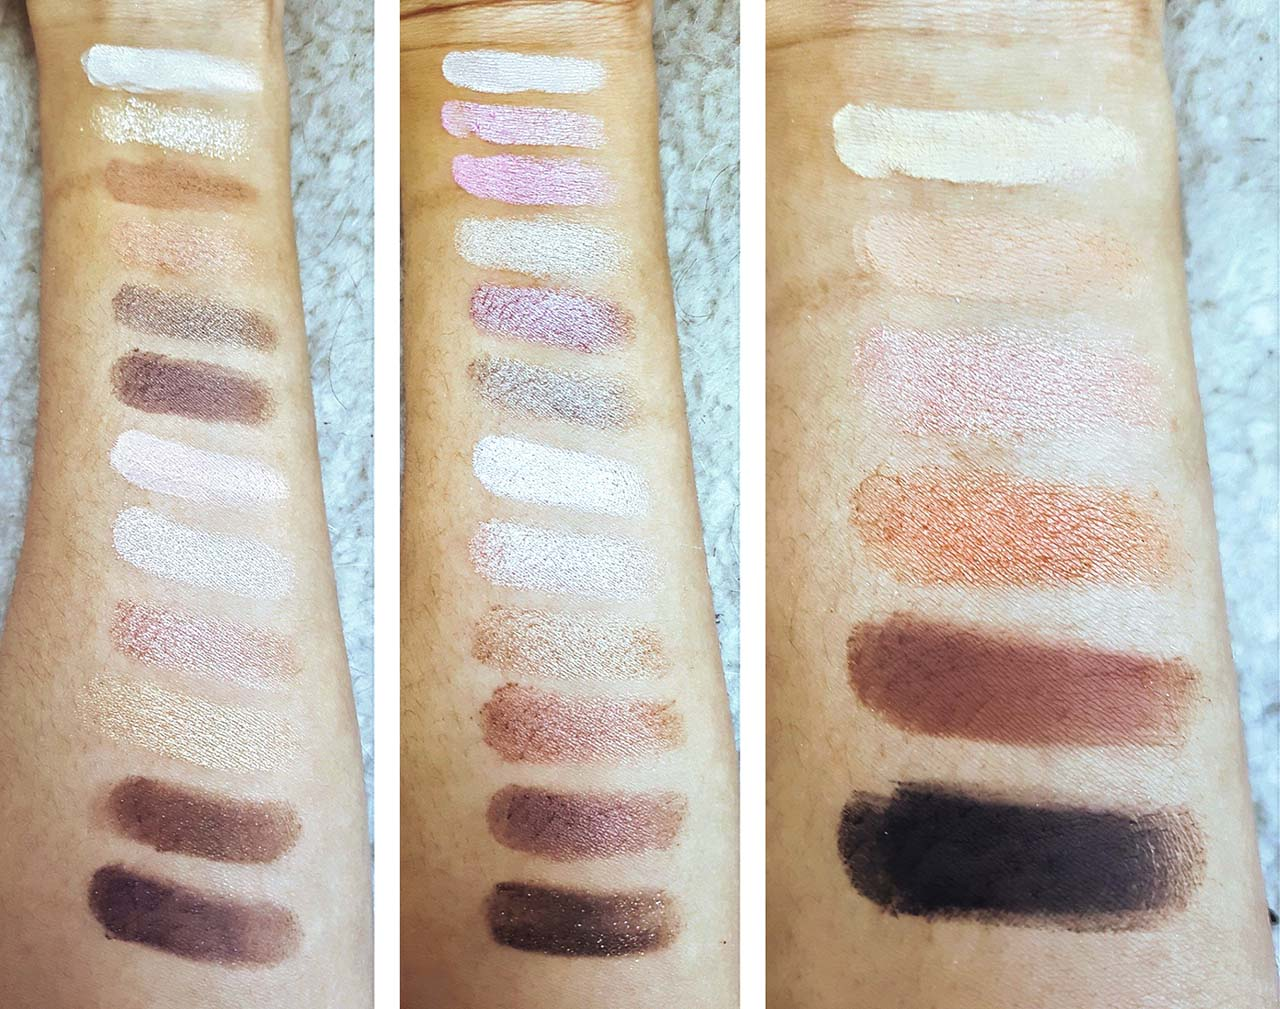 How Much Love Does The Too Faced Natural Love Palette Deserve: The first photo is rows 1 and 2 from the palette, the second photo is rows 3 and 4 and the third photo is row 5. I have tried to ensure all the colours are visible but photographs never do makeup justice! Most of the colours swatched well on the first swipe with only a couple of the lightest colours needing more. The shadows were very smooth and creamy and the shimmer and metallic shades gave proper glitter and shine pay off!